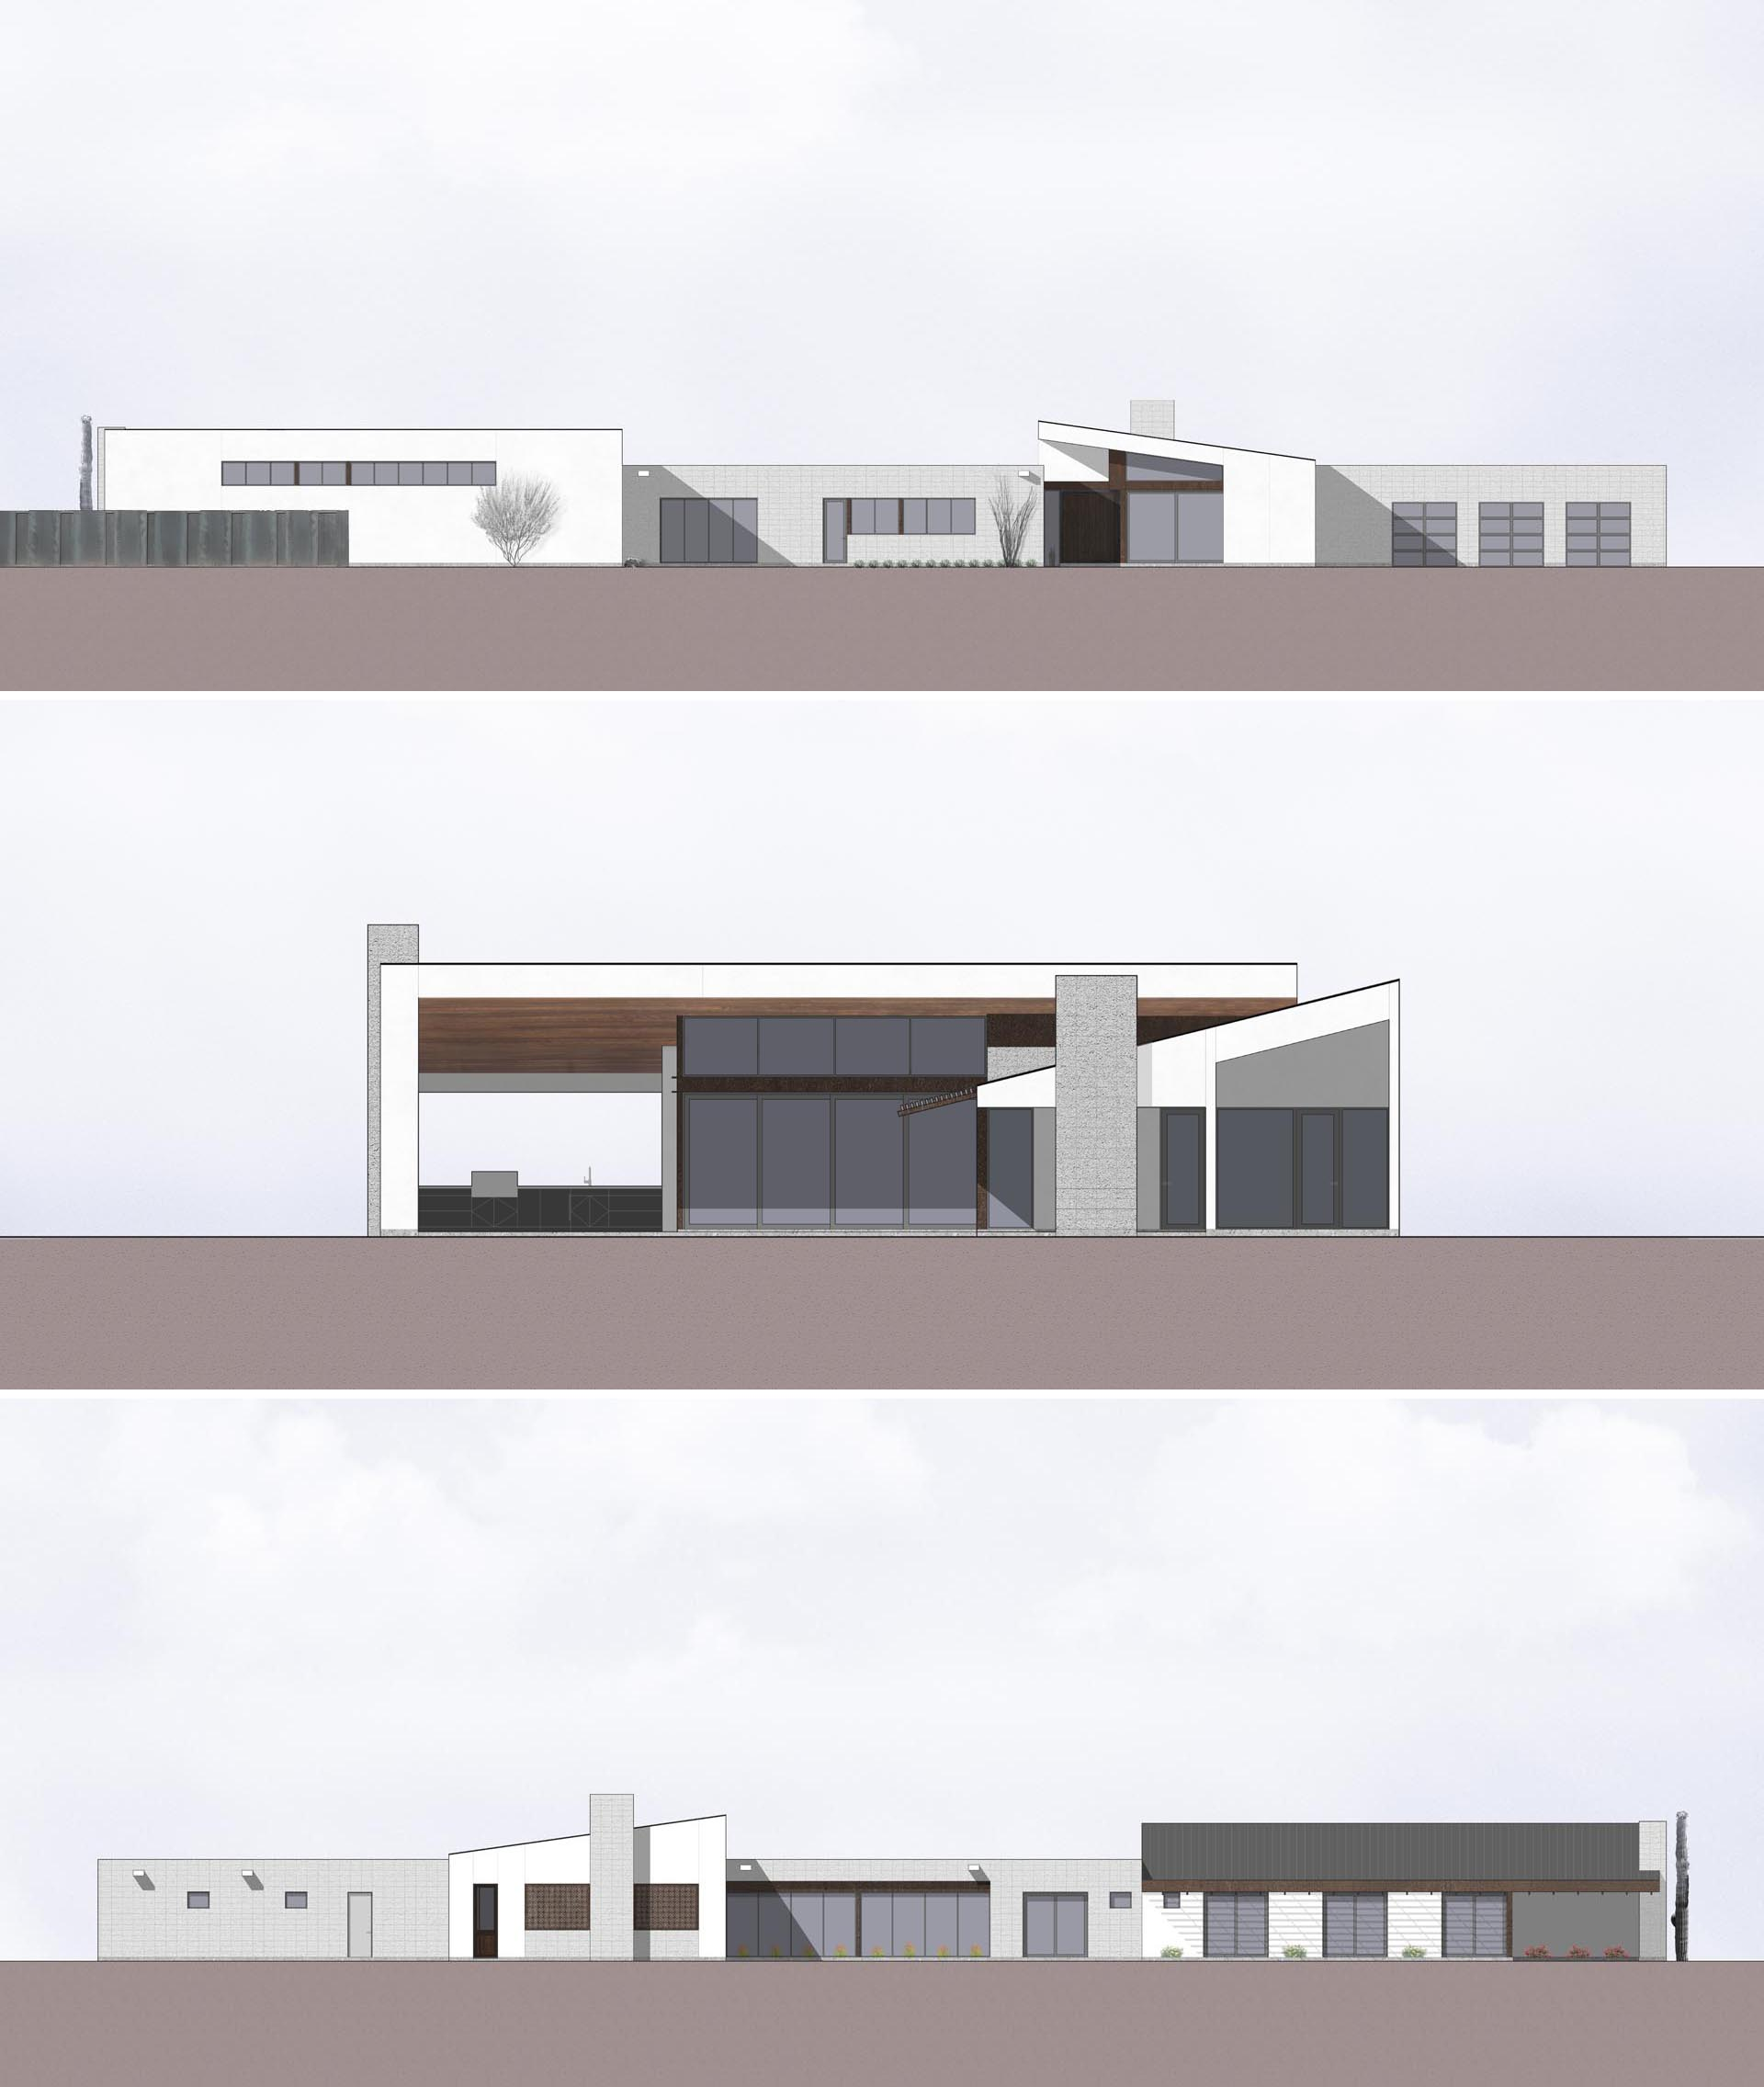 The elevations of a modern house that uses concrete blocks in its construction.